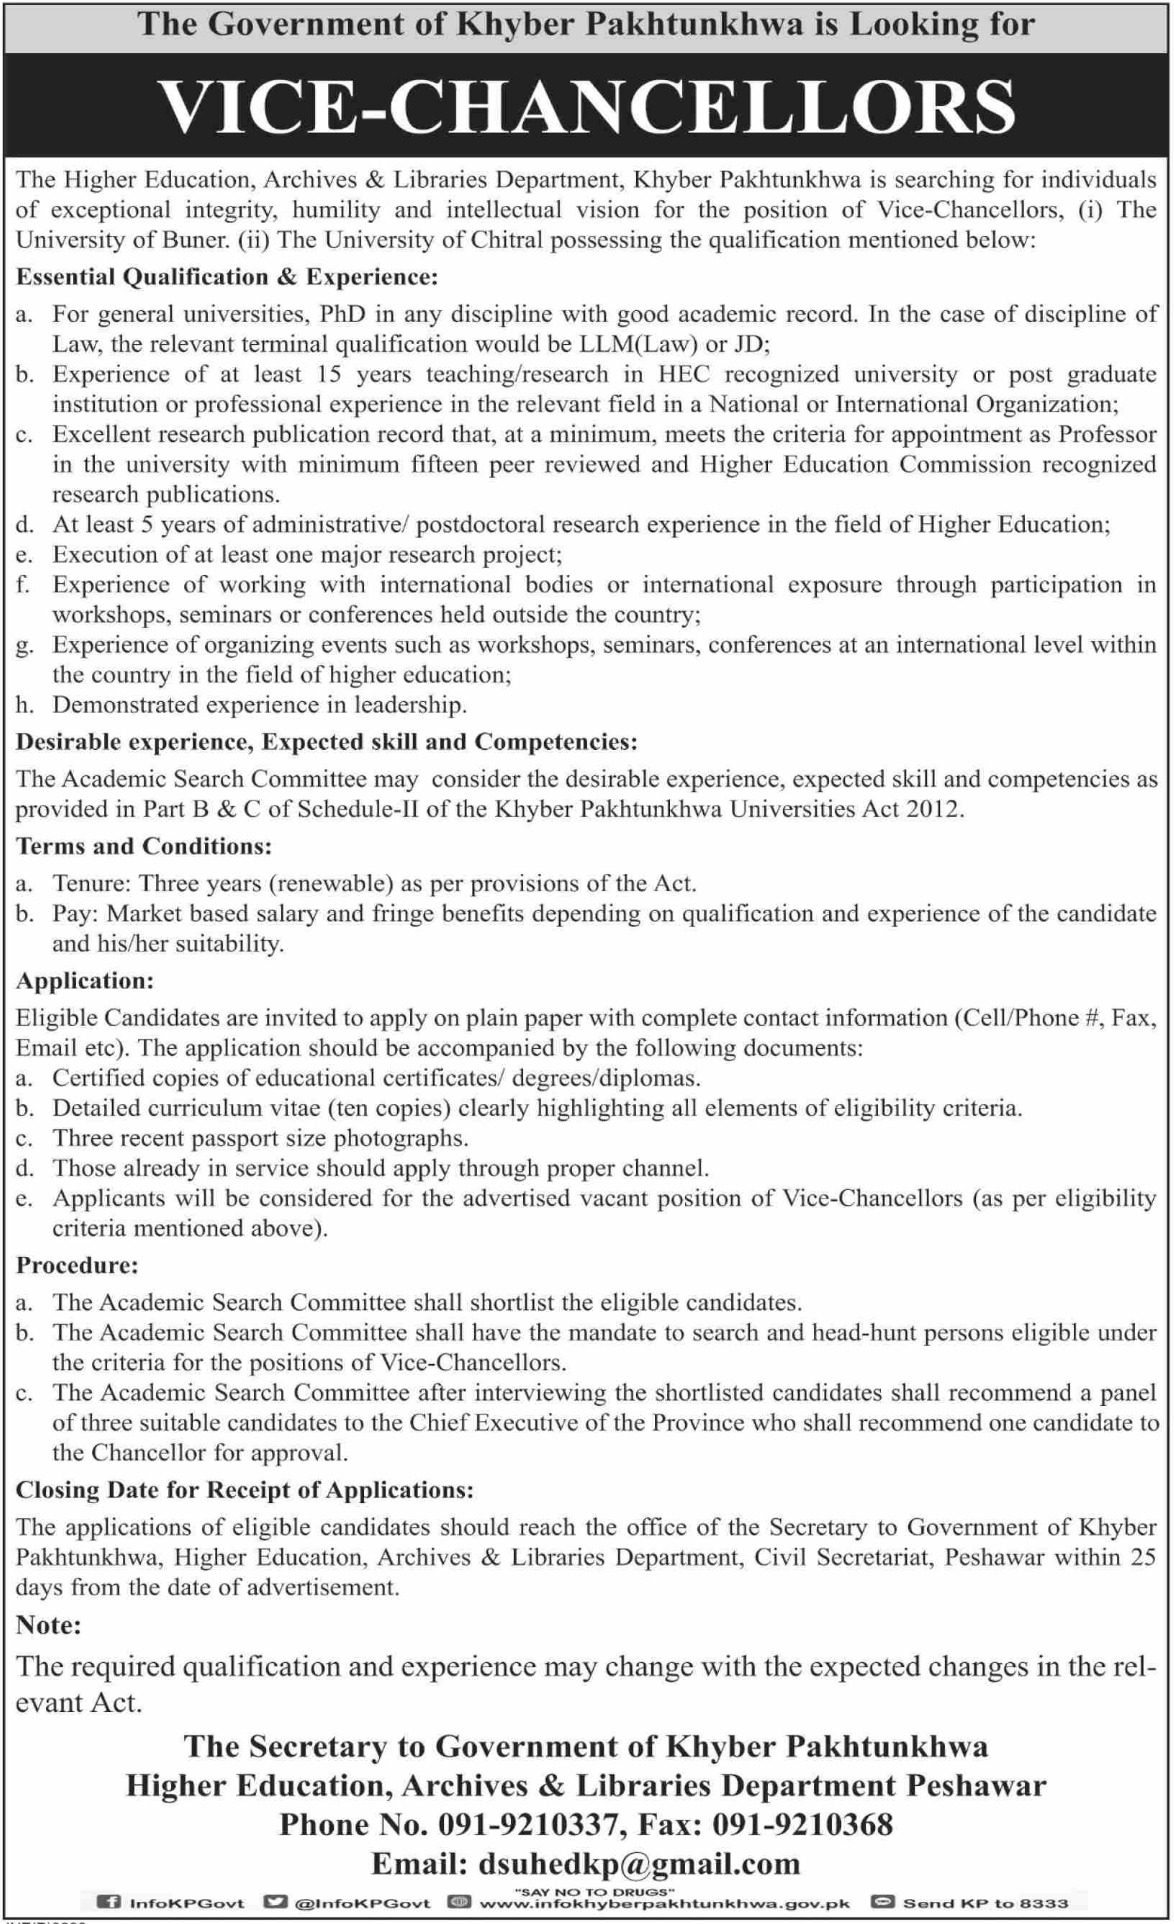 Higher Education Archives & Libraries Department Khyber Pakhtunkhwa Jobs 2019